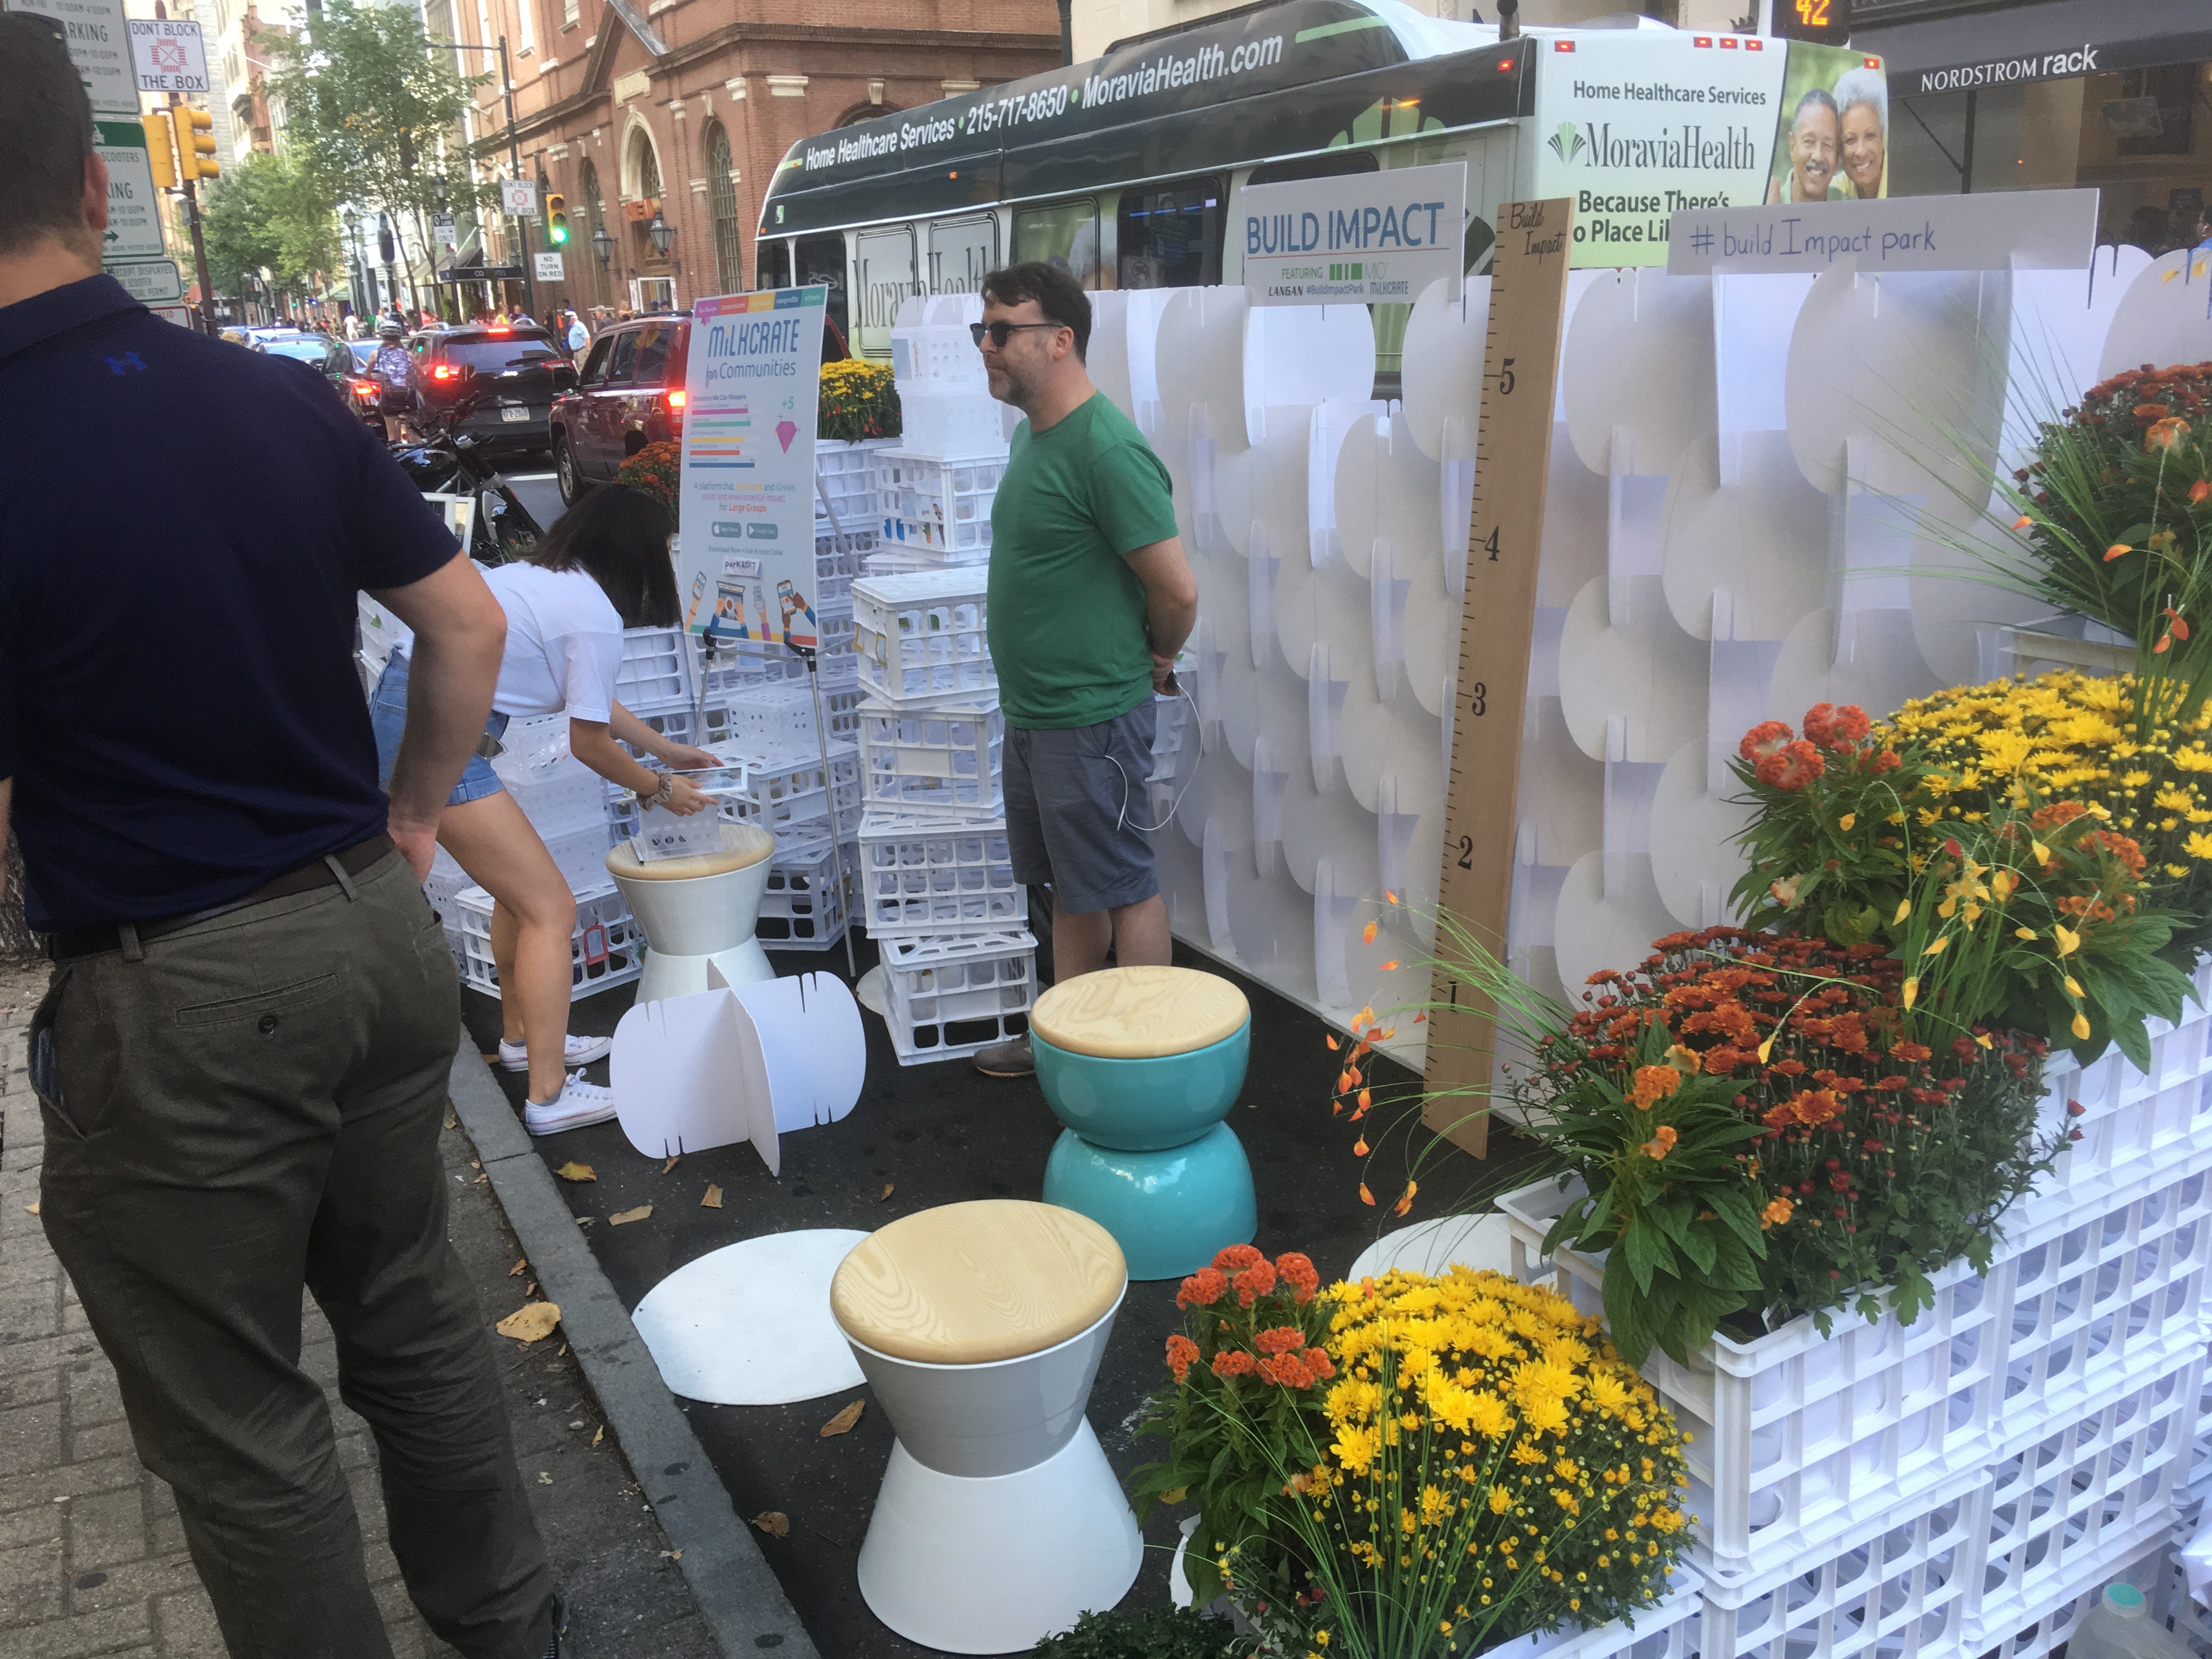 Milkcrate, MIO, and Langan Engineering built their Build Impact Park(ing) Day pop-up at 17th and Chestnut together